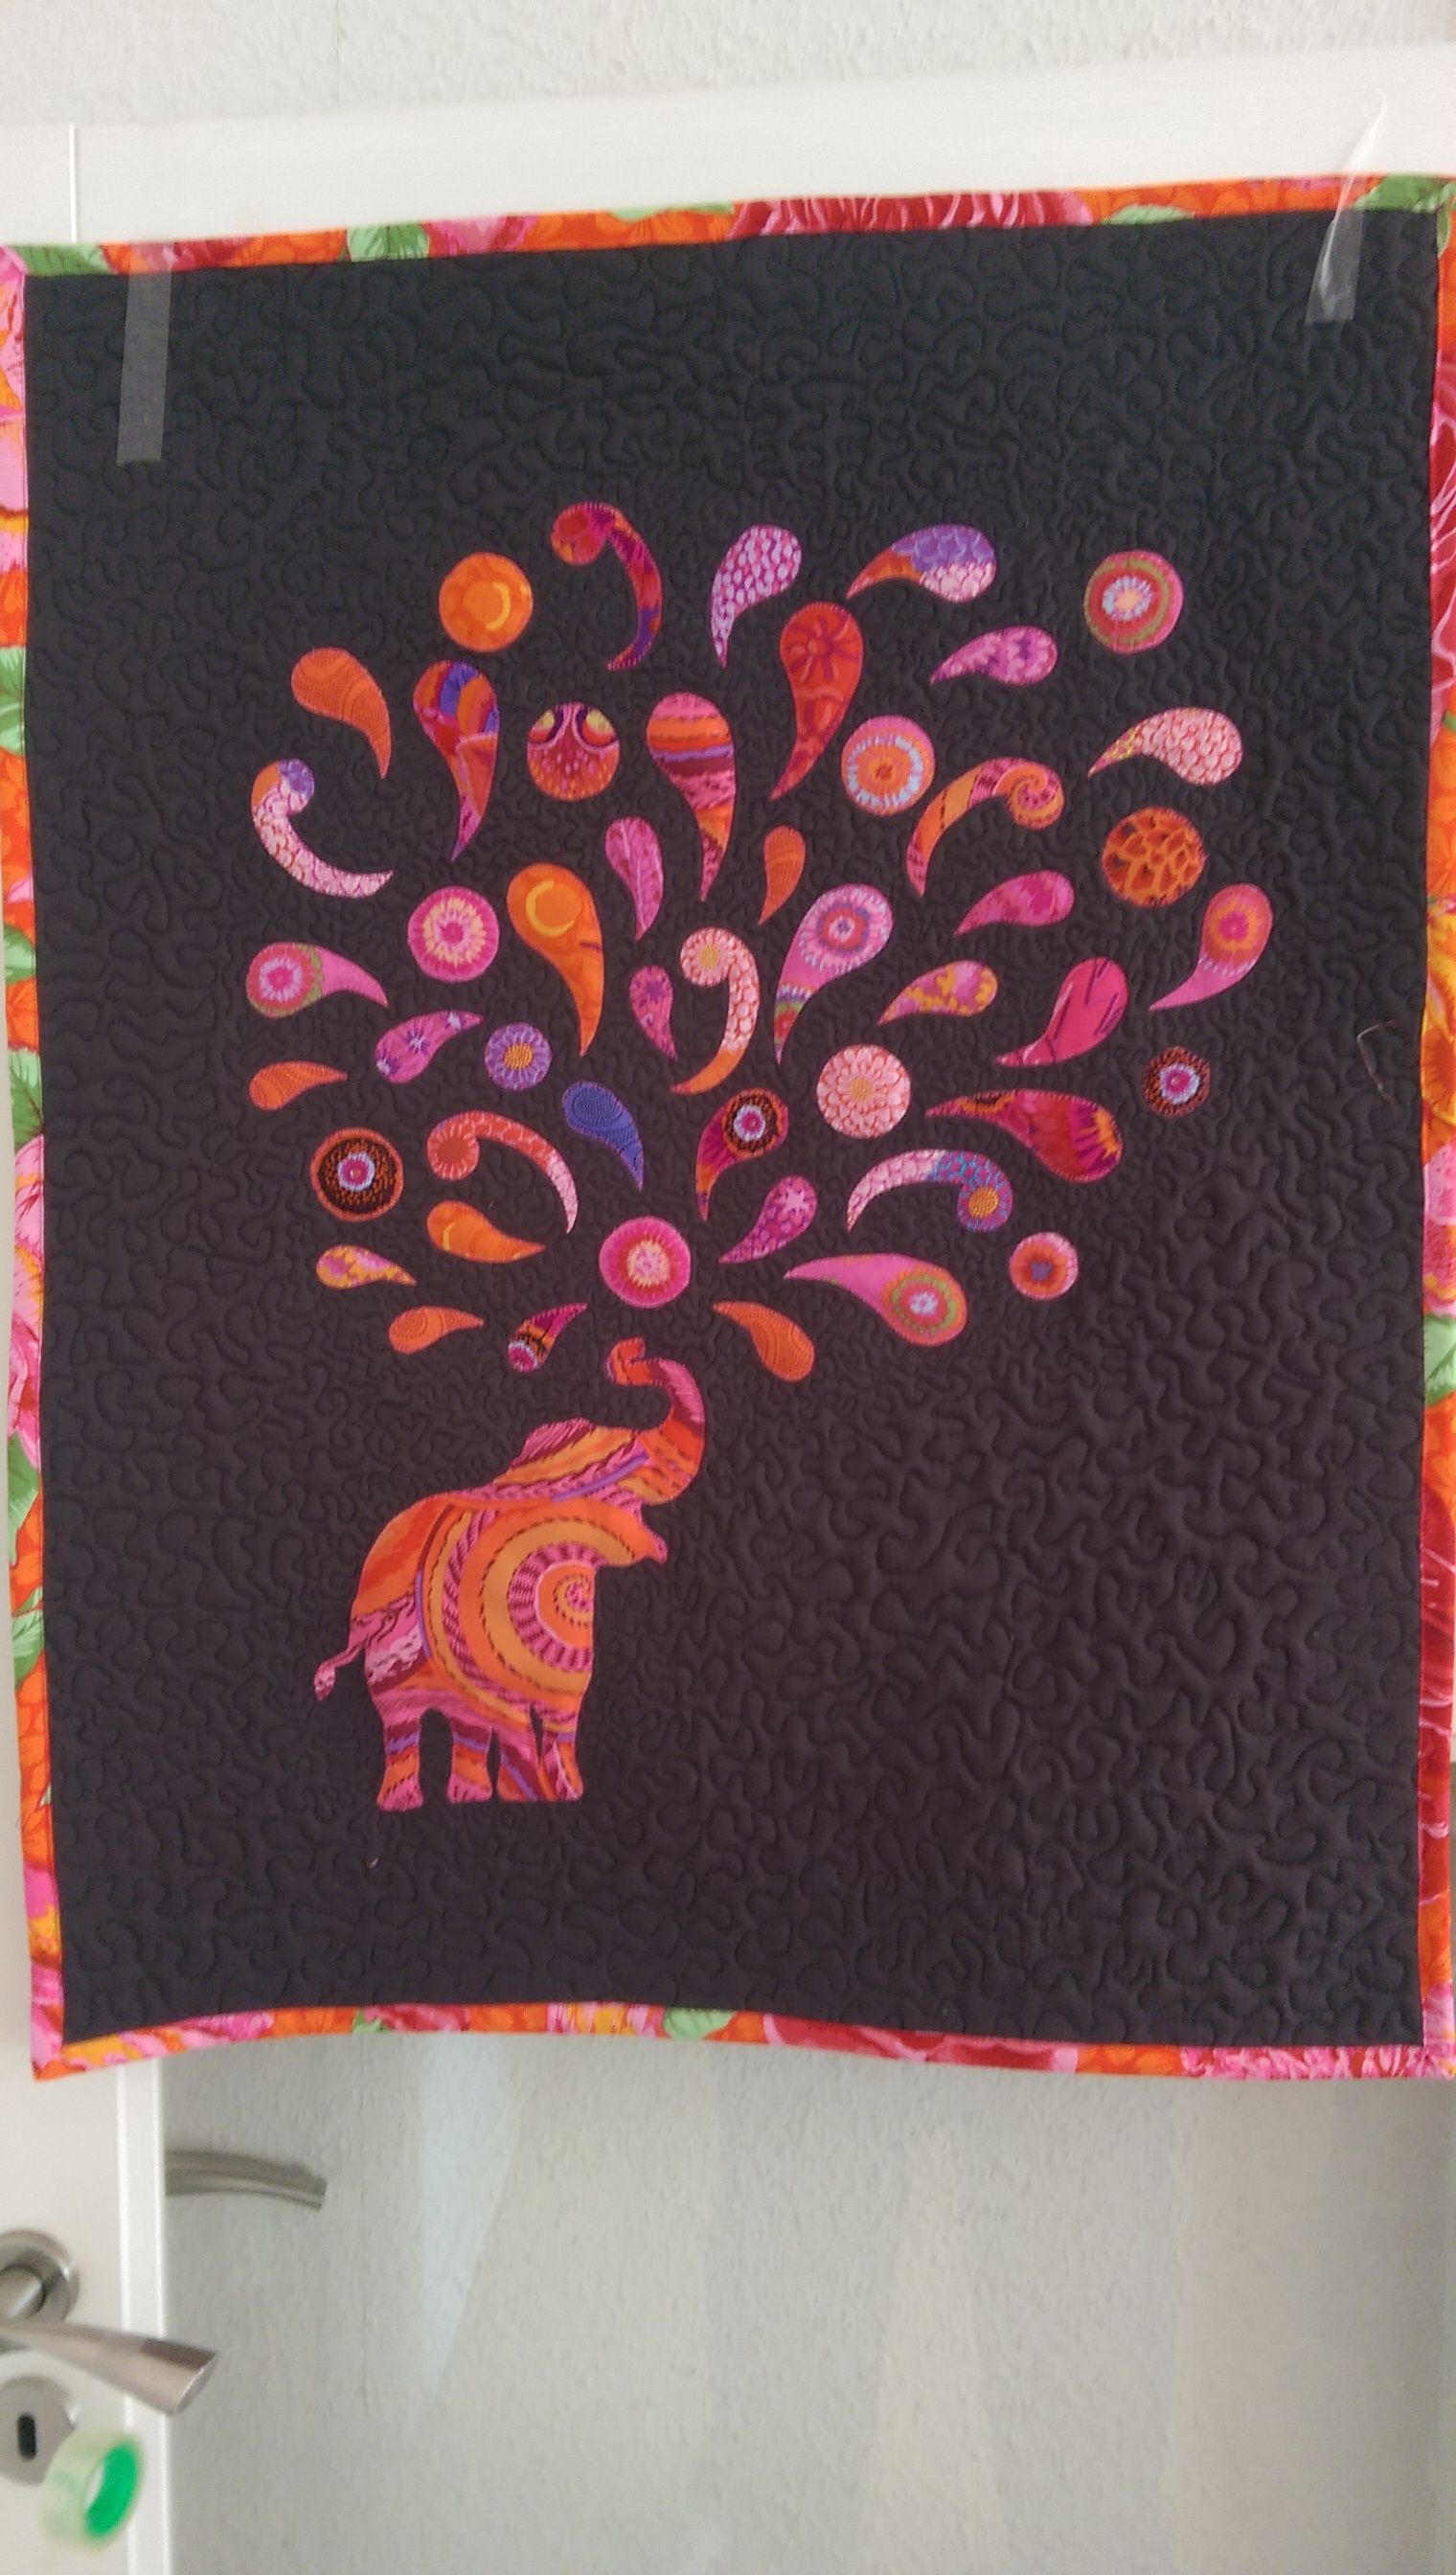 My Own Way Of Making The Paisley Splash Elephant Quilting Jpg 1520x2688